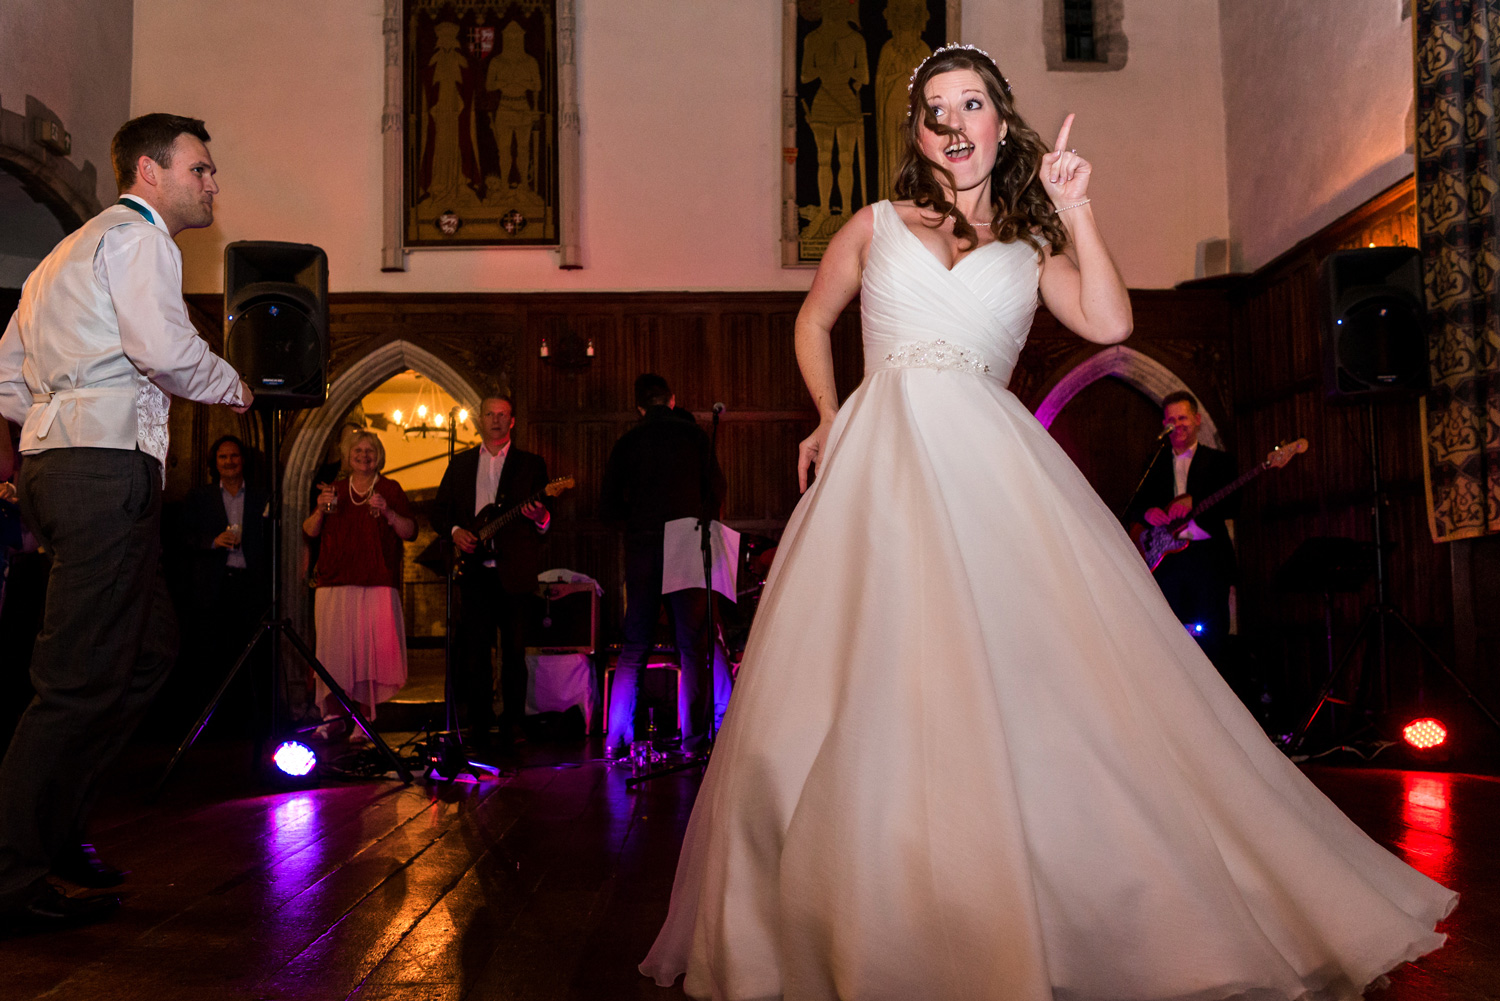 Lympne castle first dance